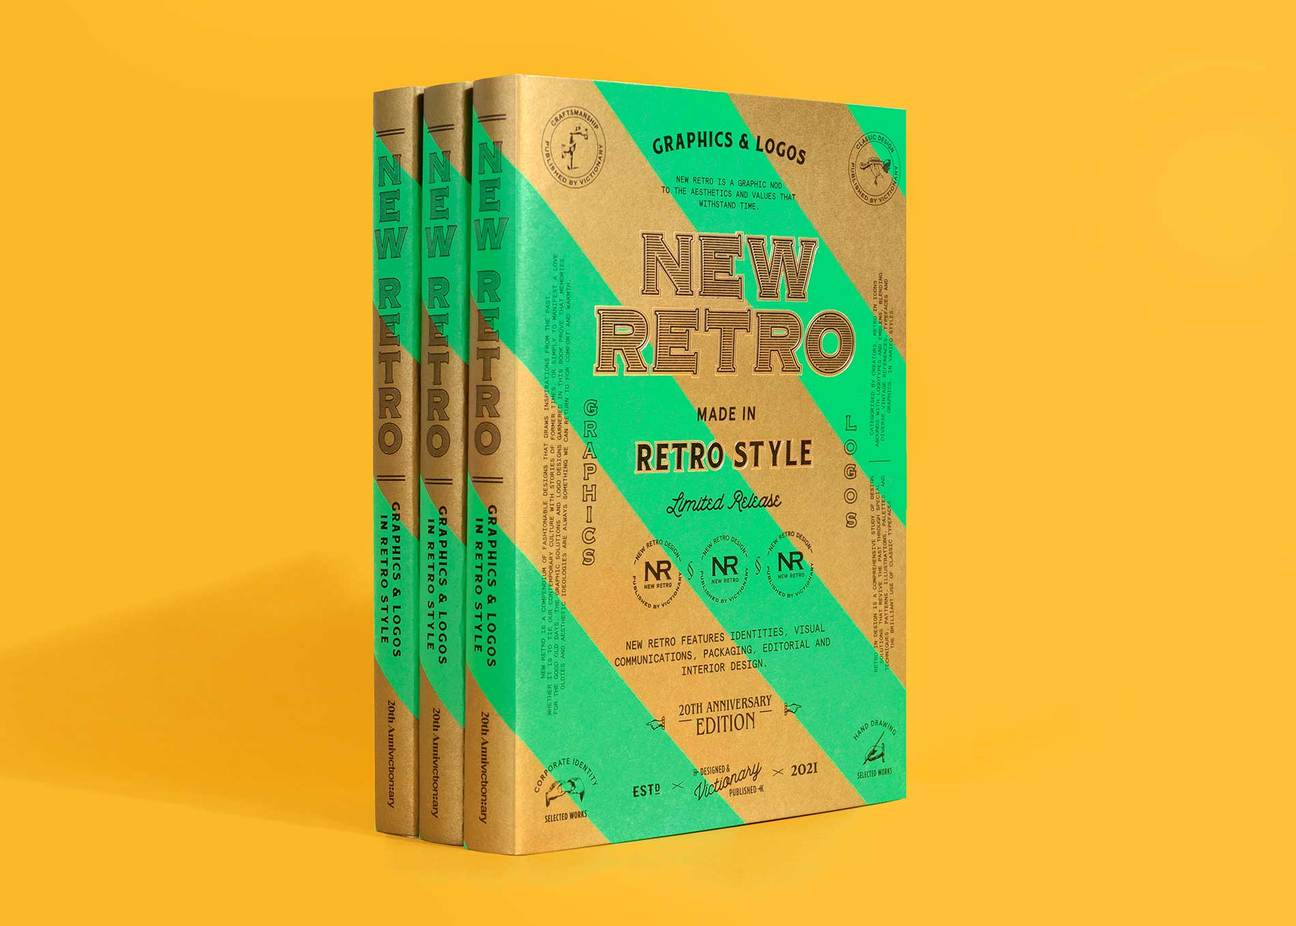 Thumbnail for 'New Retro' Showcases Work From the Past, Present, and Future in a Way That's Sure To Inspire